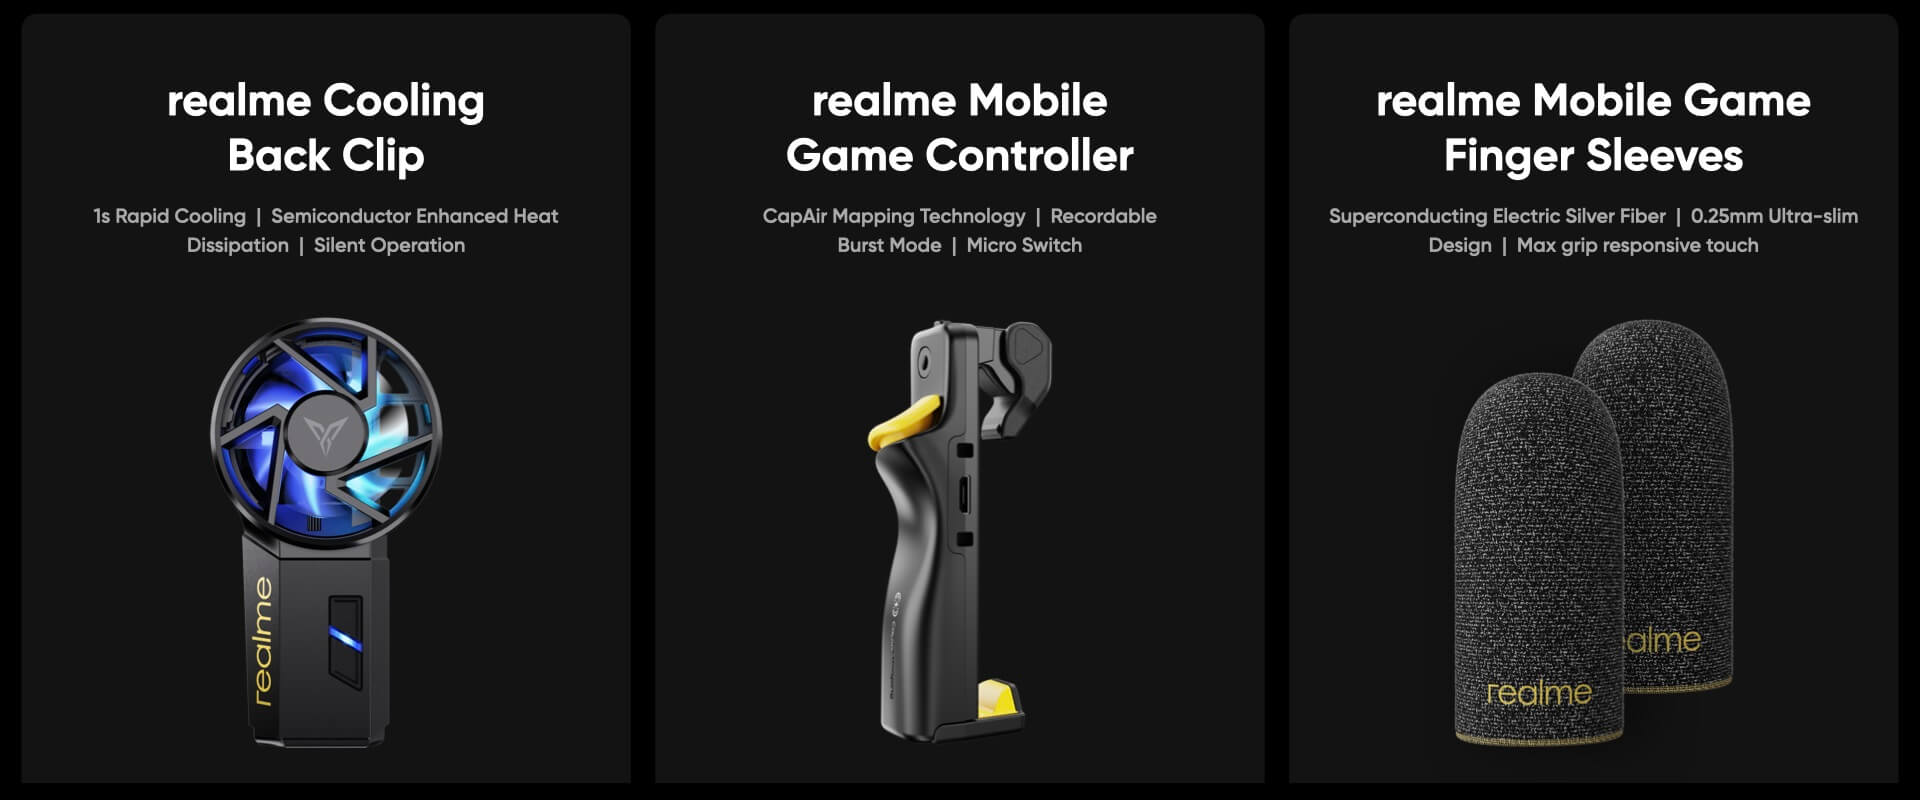 realme cooling fan mobile game controller finger sleeves